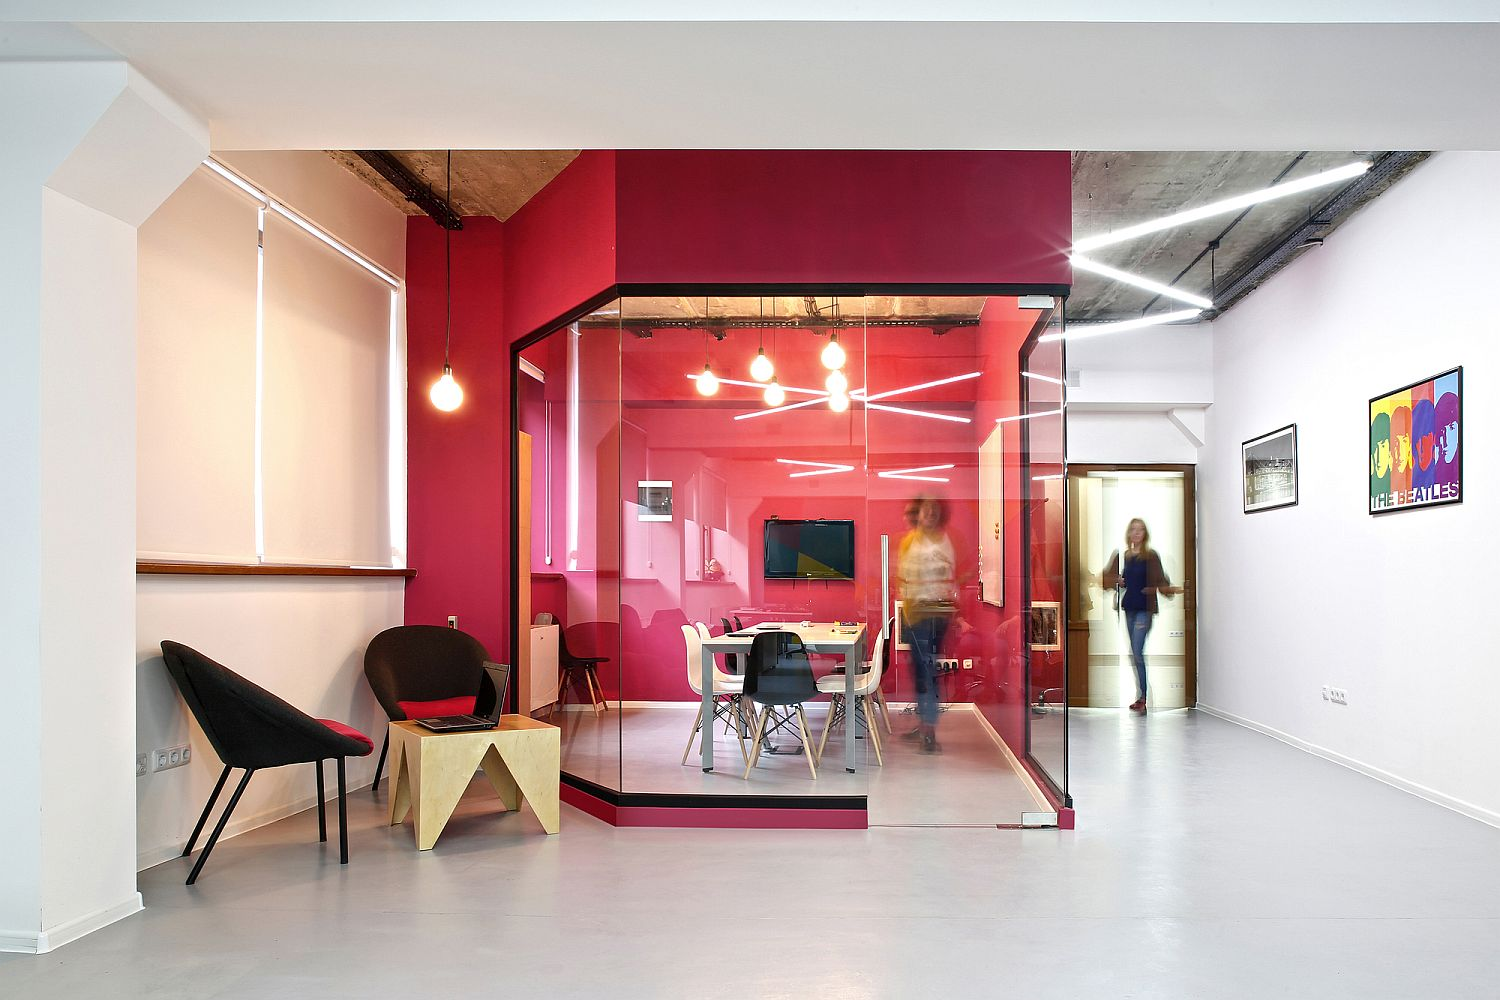 World of olor and reative Design: Modern Industrial Office in ... - ^